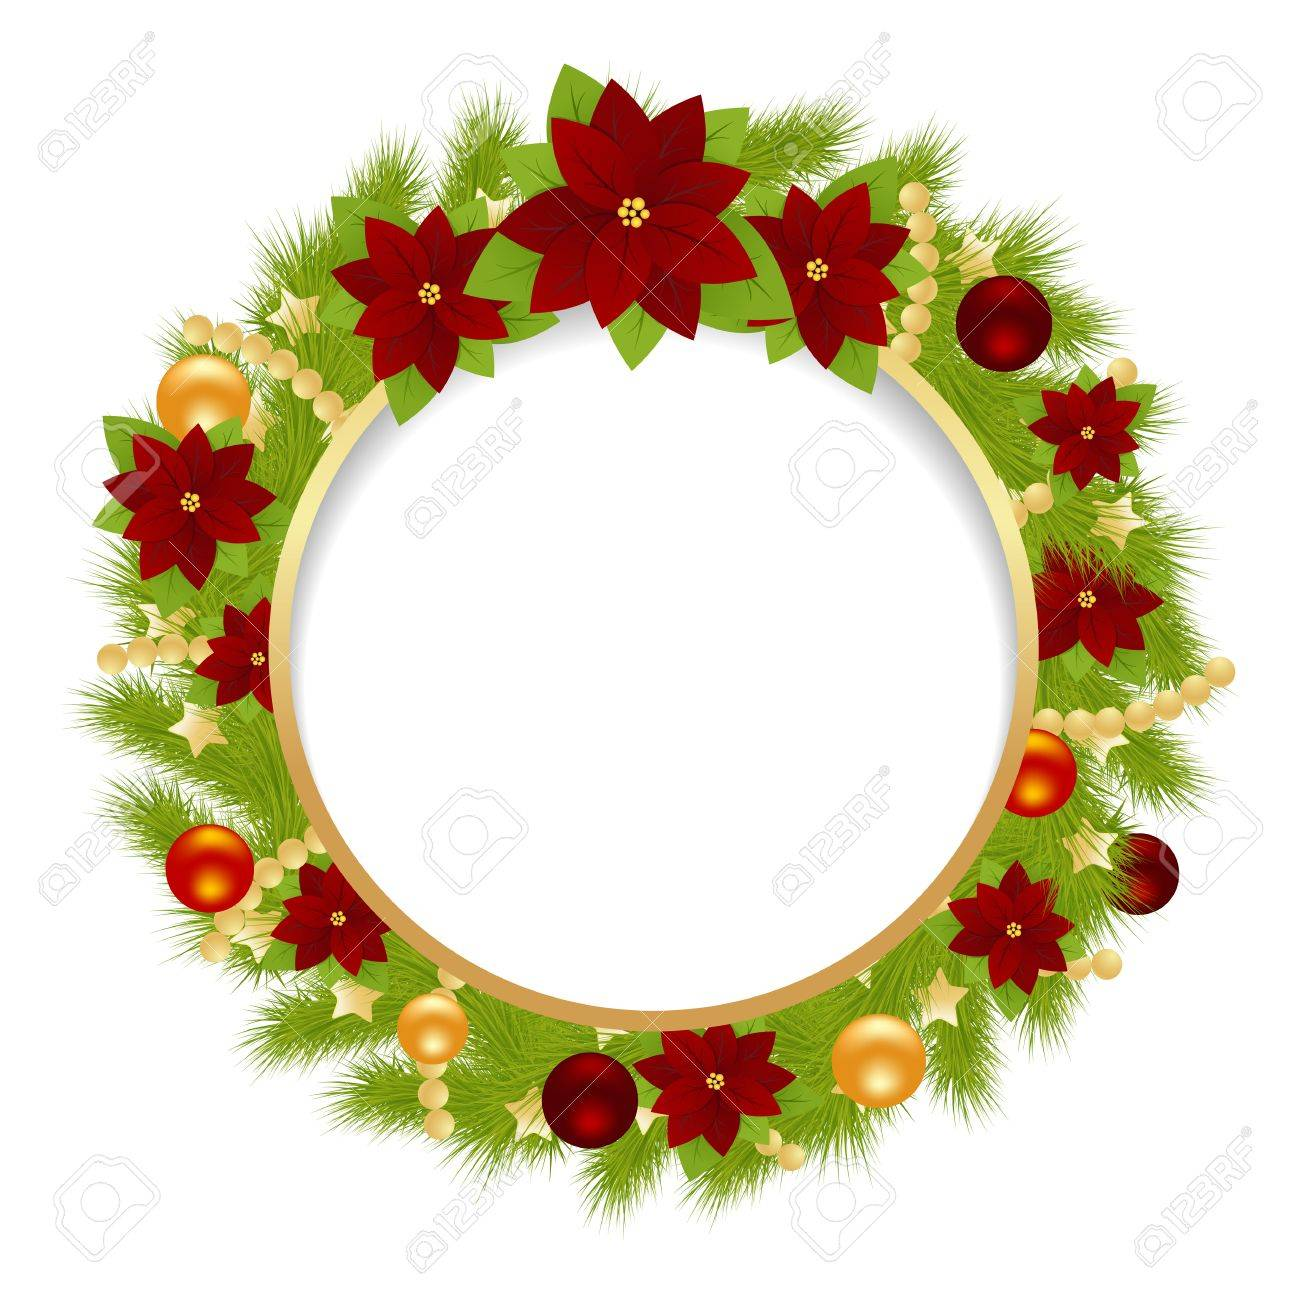 Christmas Wreath With Christmas Decorations Isolated On A White ...